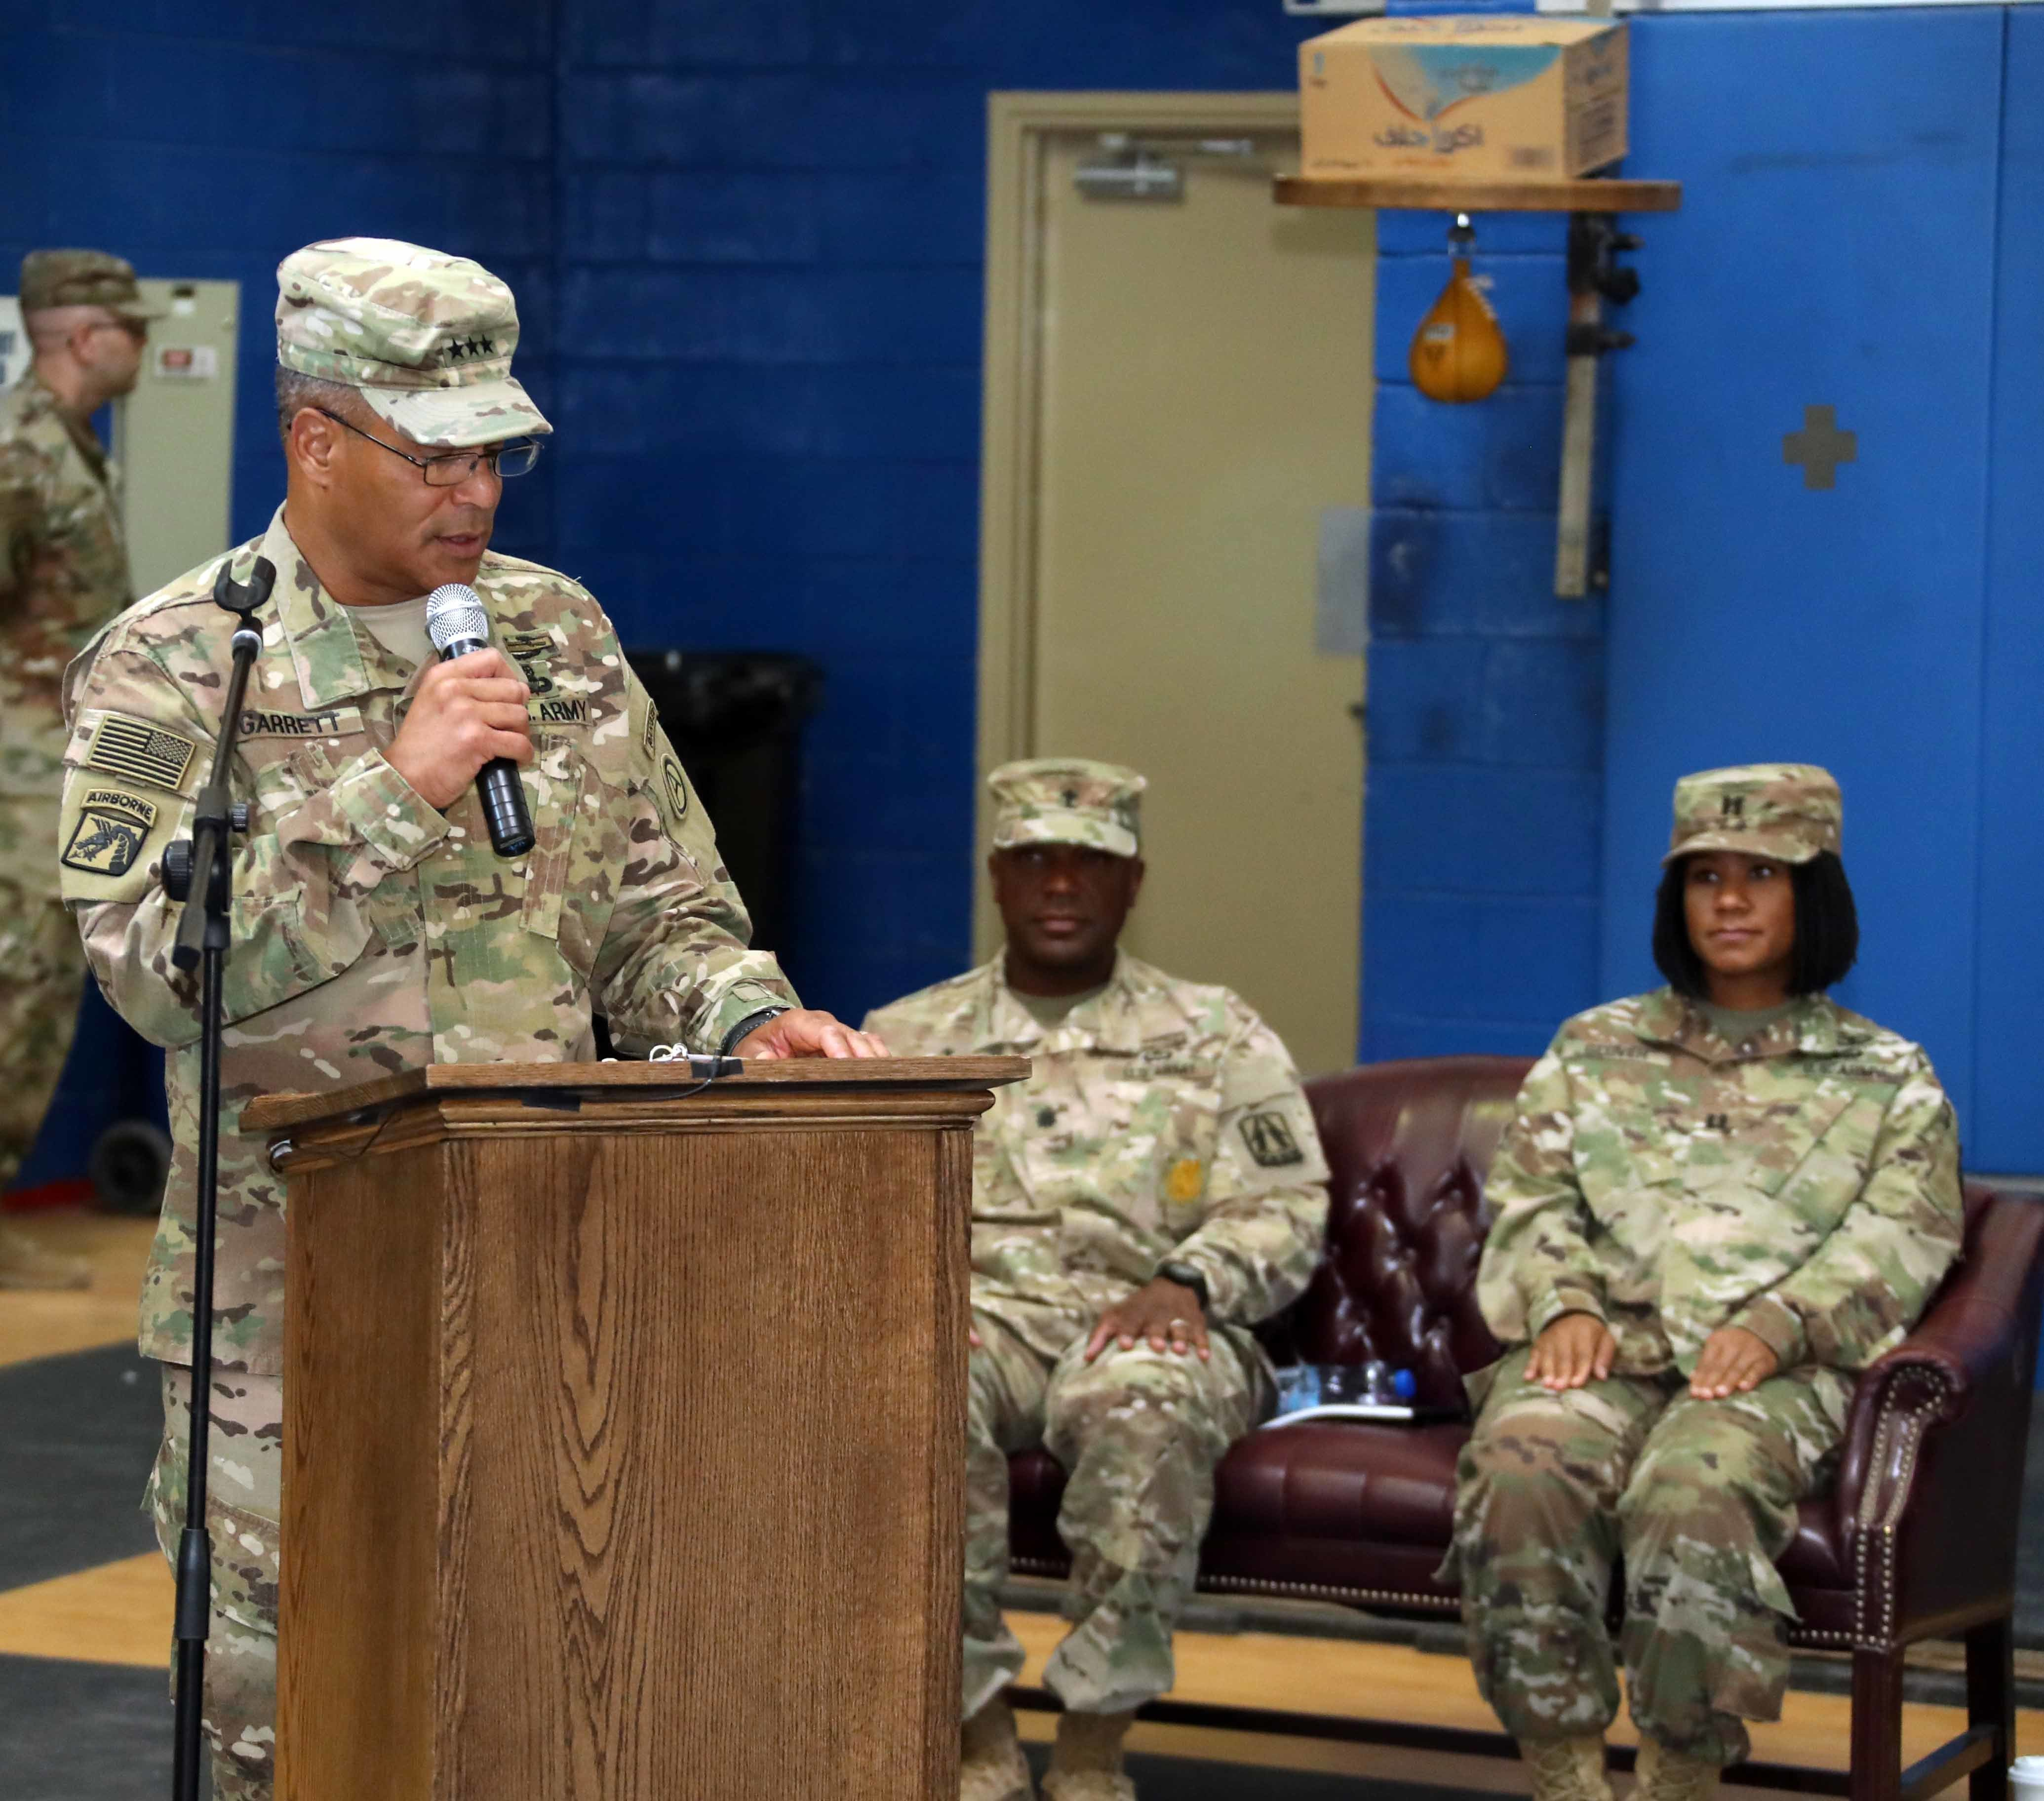 Brig. Gen. Phillips Takes 'Ready Lightning' Command > U.S